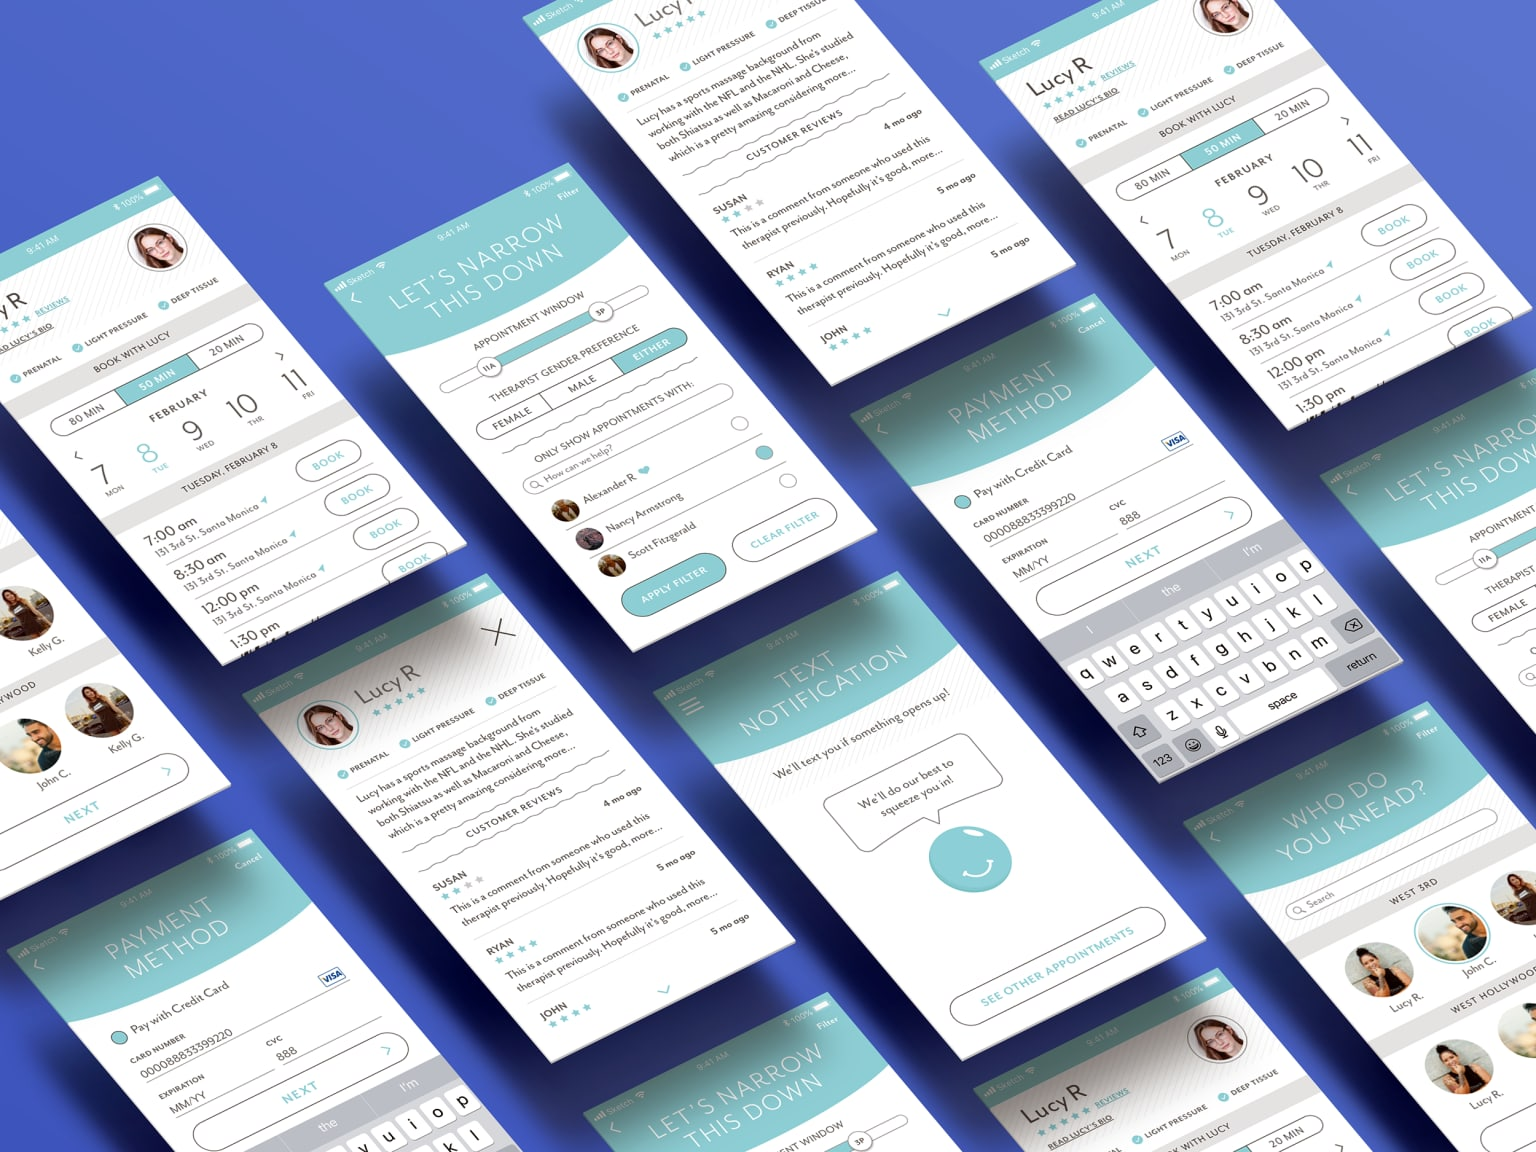 UI for massage app Squeeze